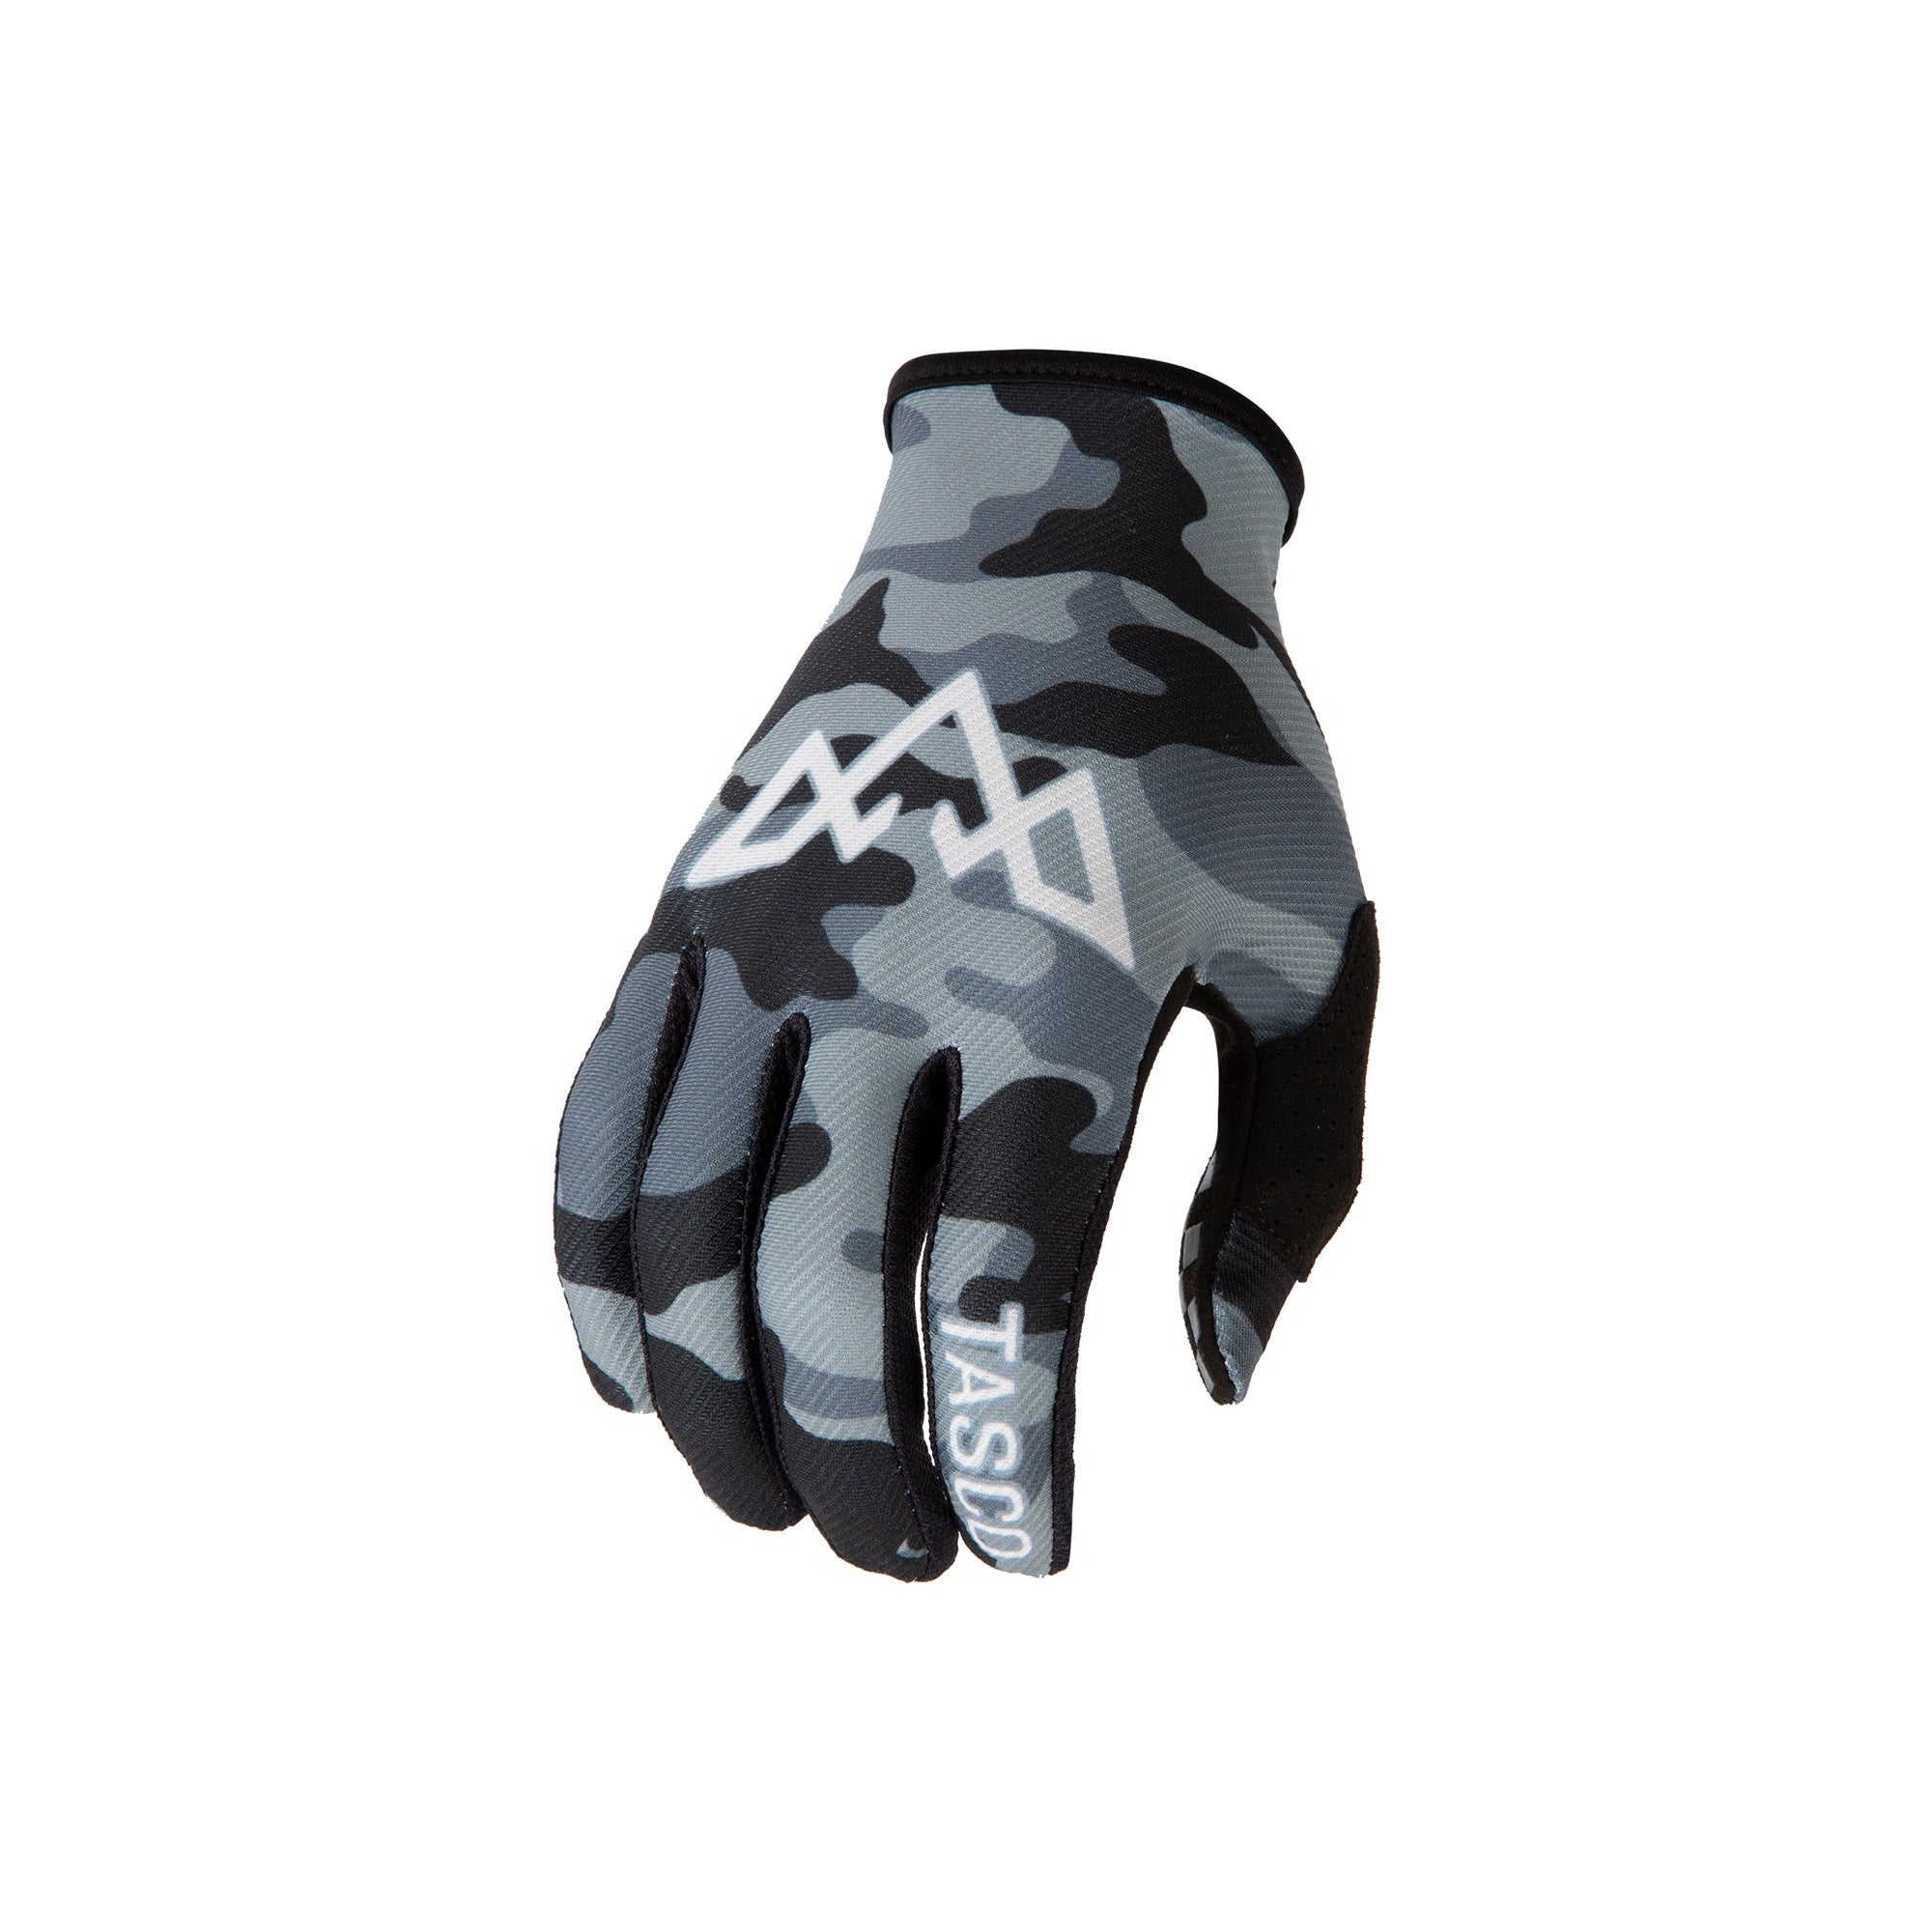 Surplus Double Digits MTB Gloves - Grey Camo - MTB Lifestyle | TASCO MTB